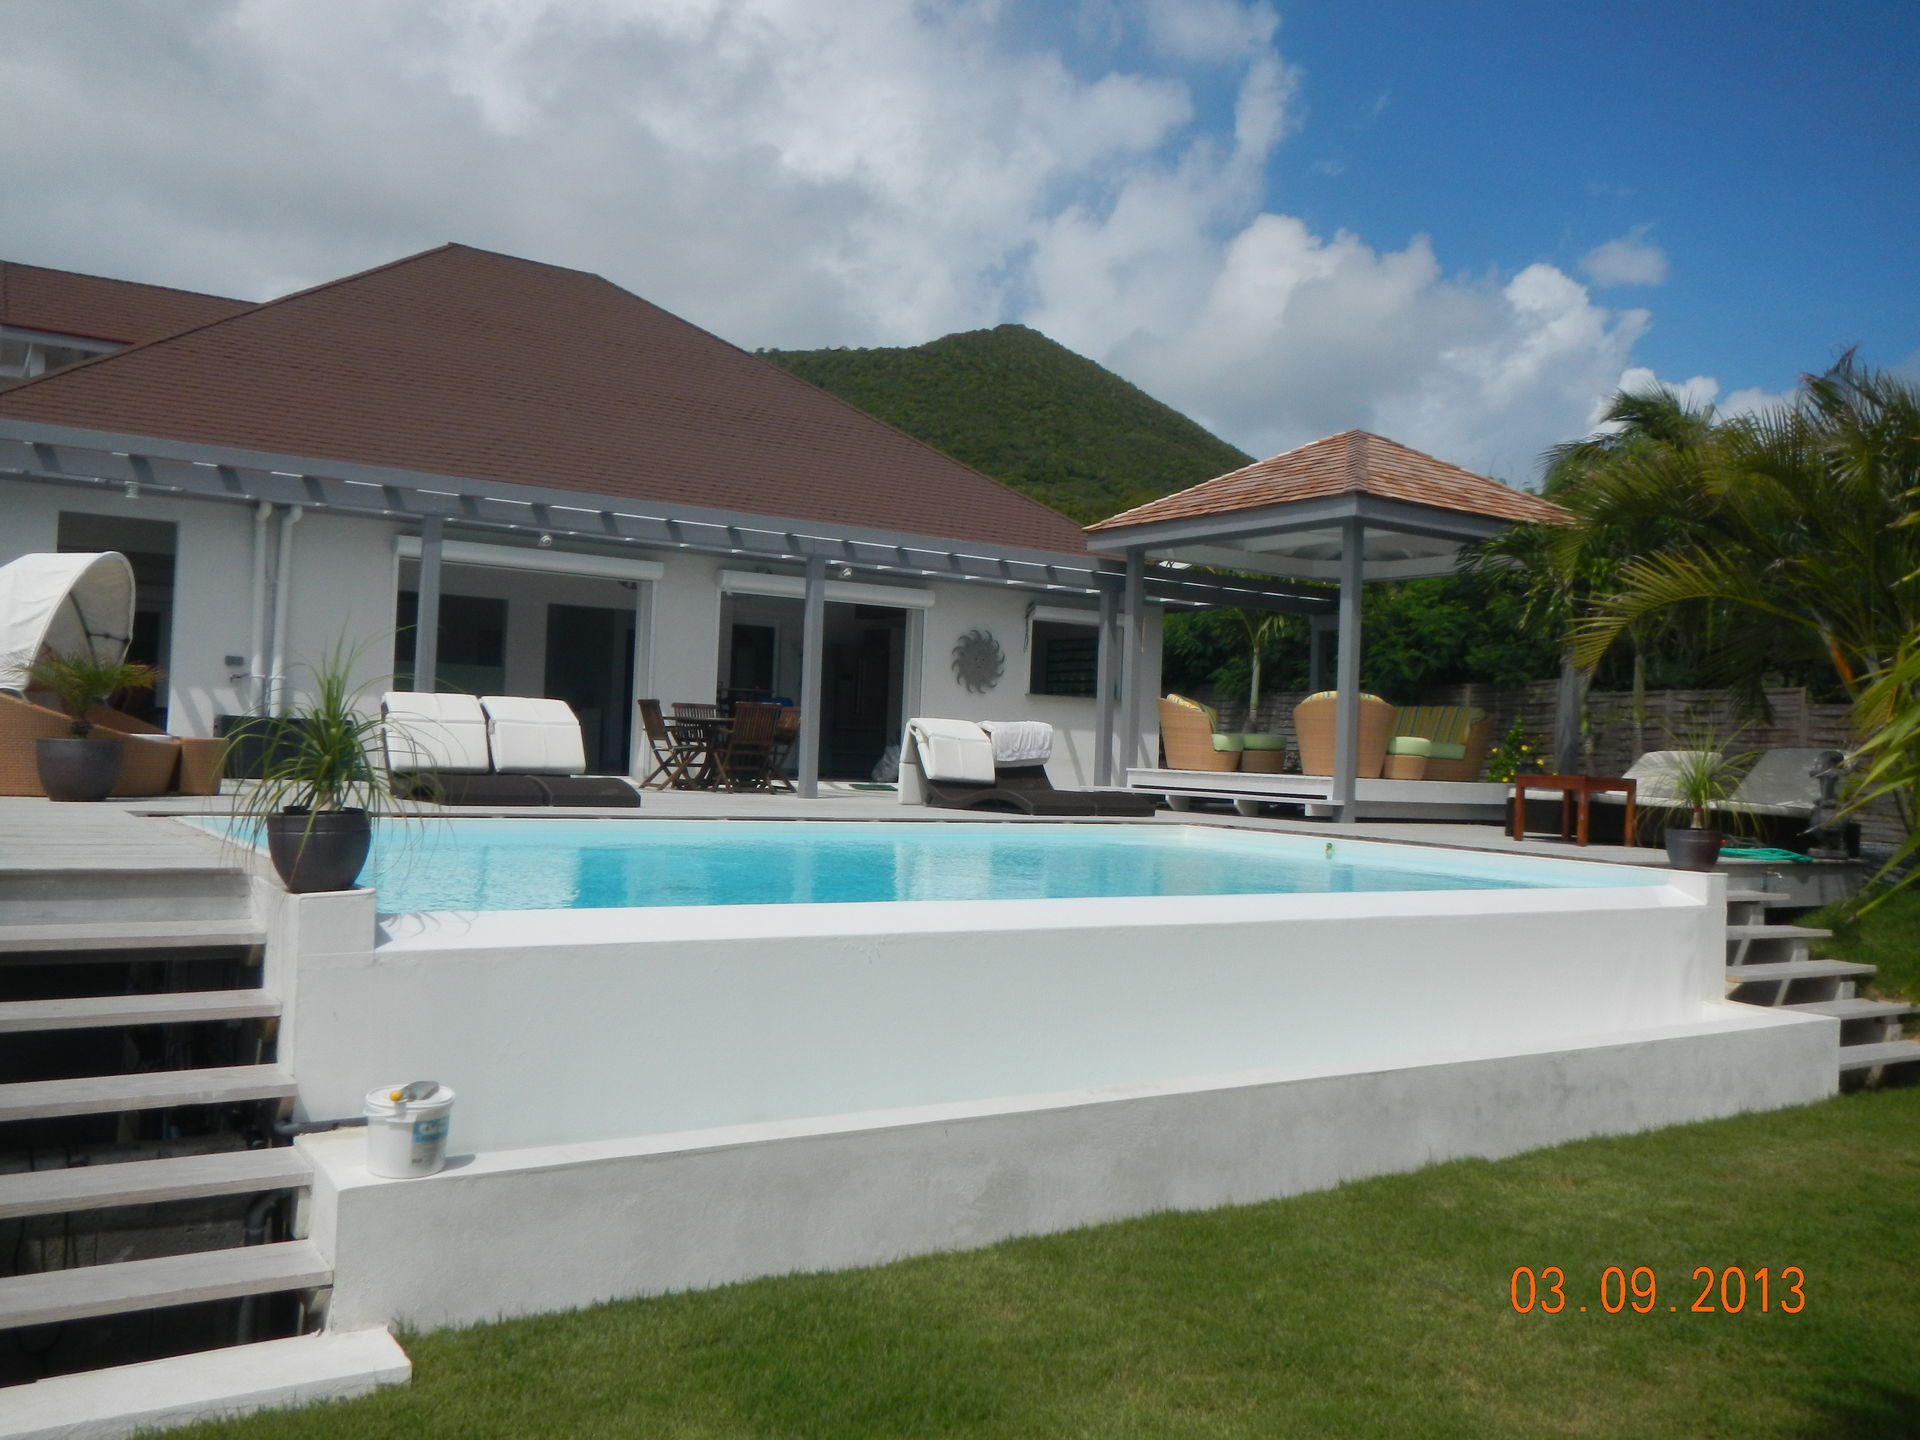 Spacious Villa With Swimming Pool In Saint Martin Orient Beach Resort